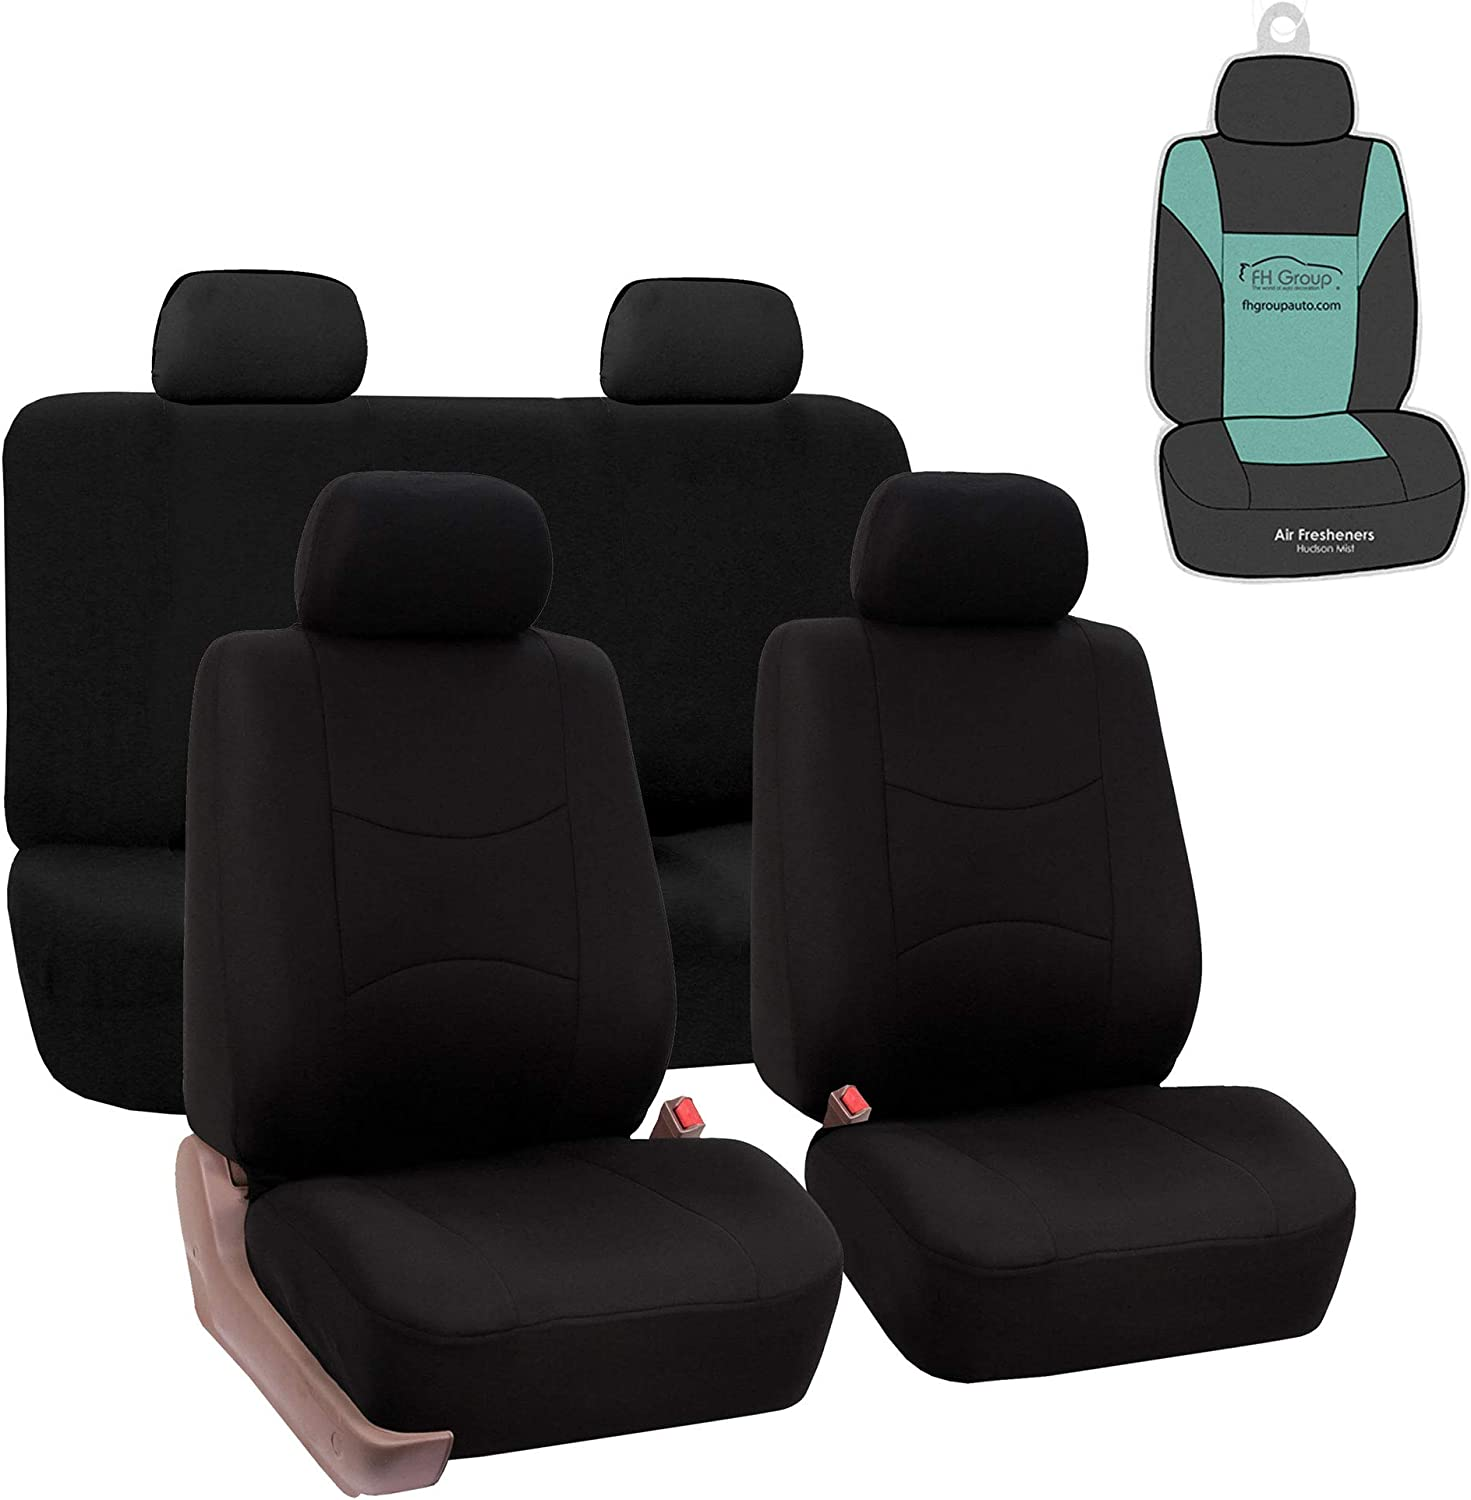 or Van Truck Universal Car FH Group FB032115 Unique Flat Cloth Seat Covers Red//Black with Gift SUV